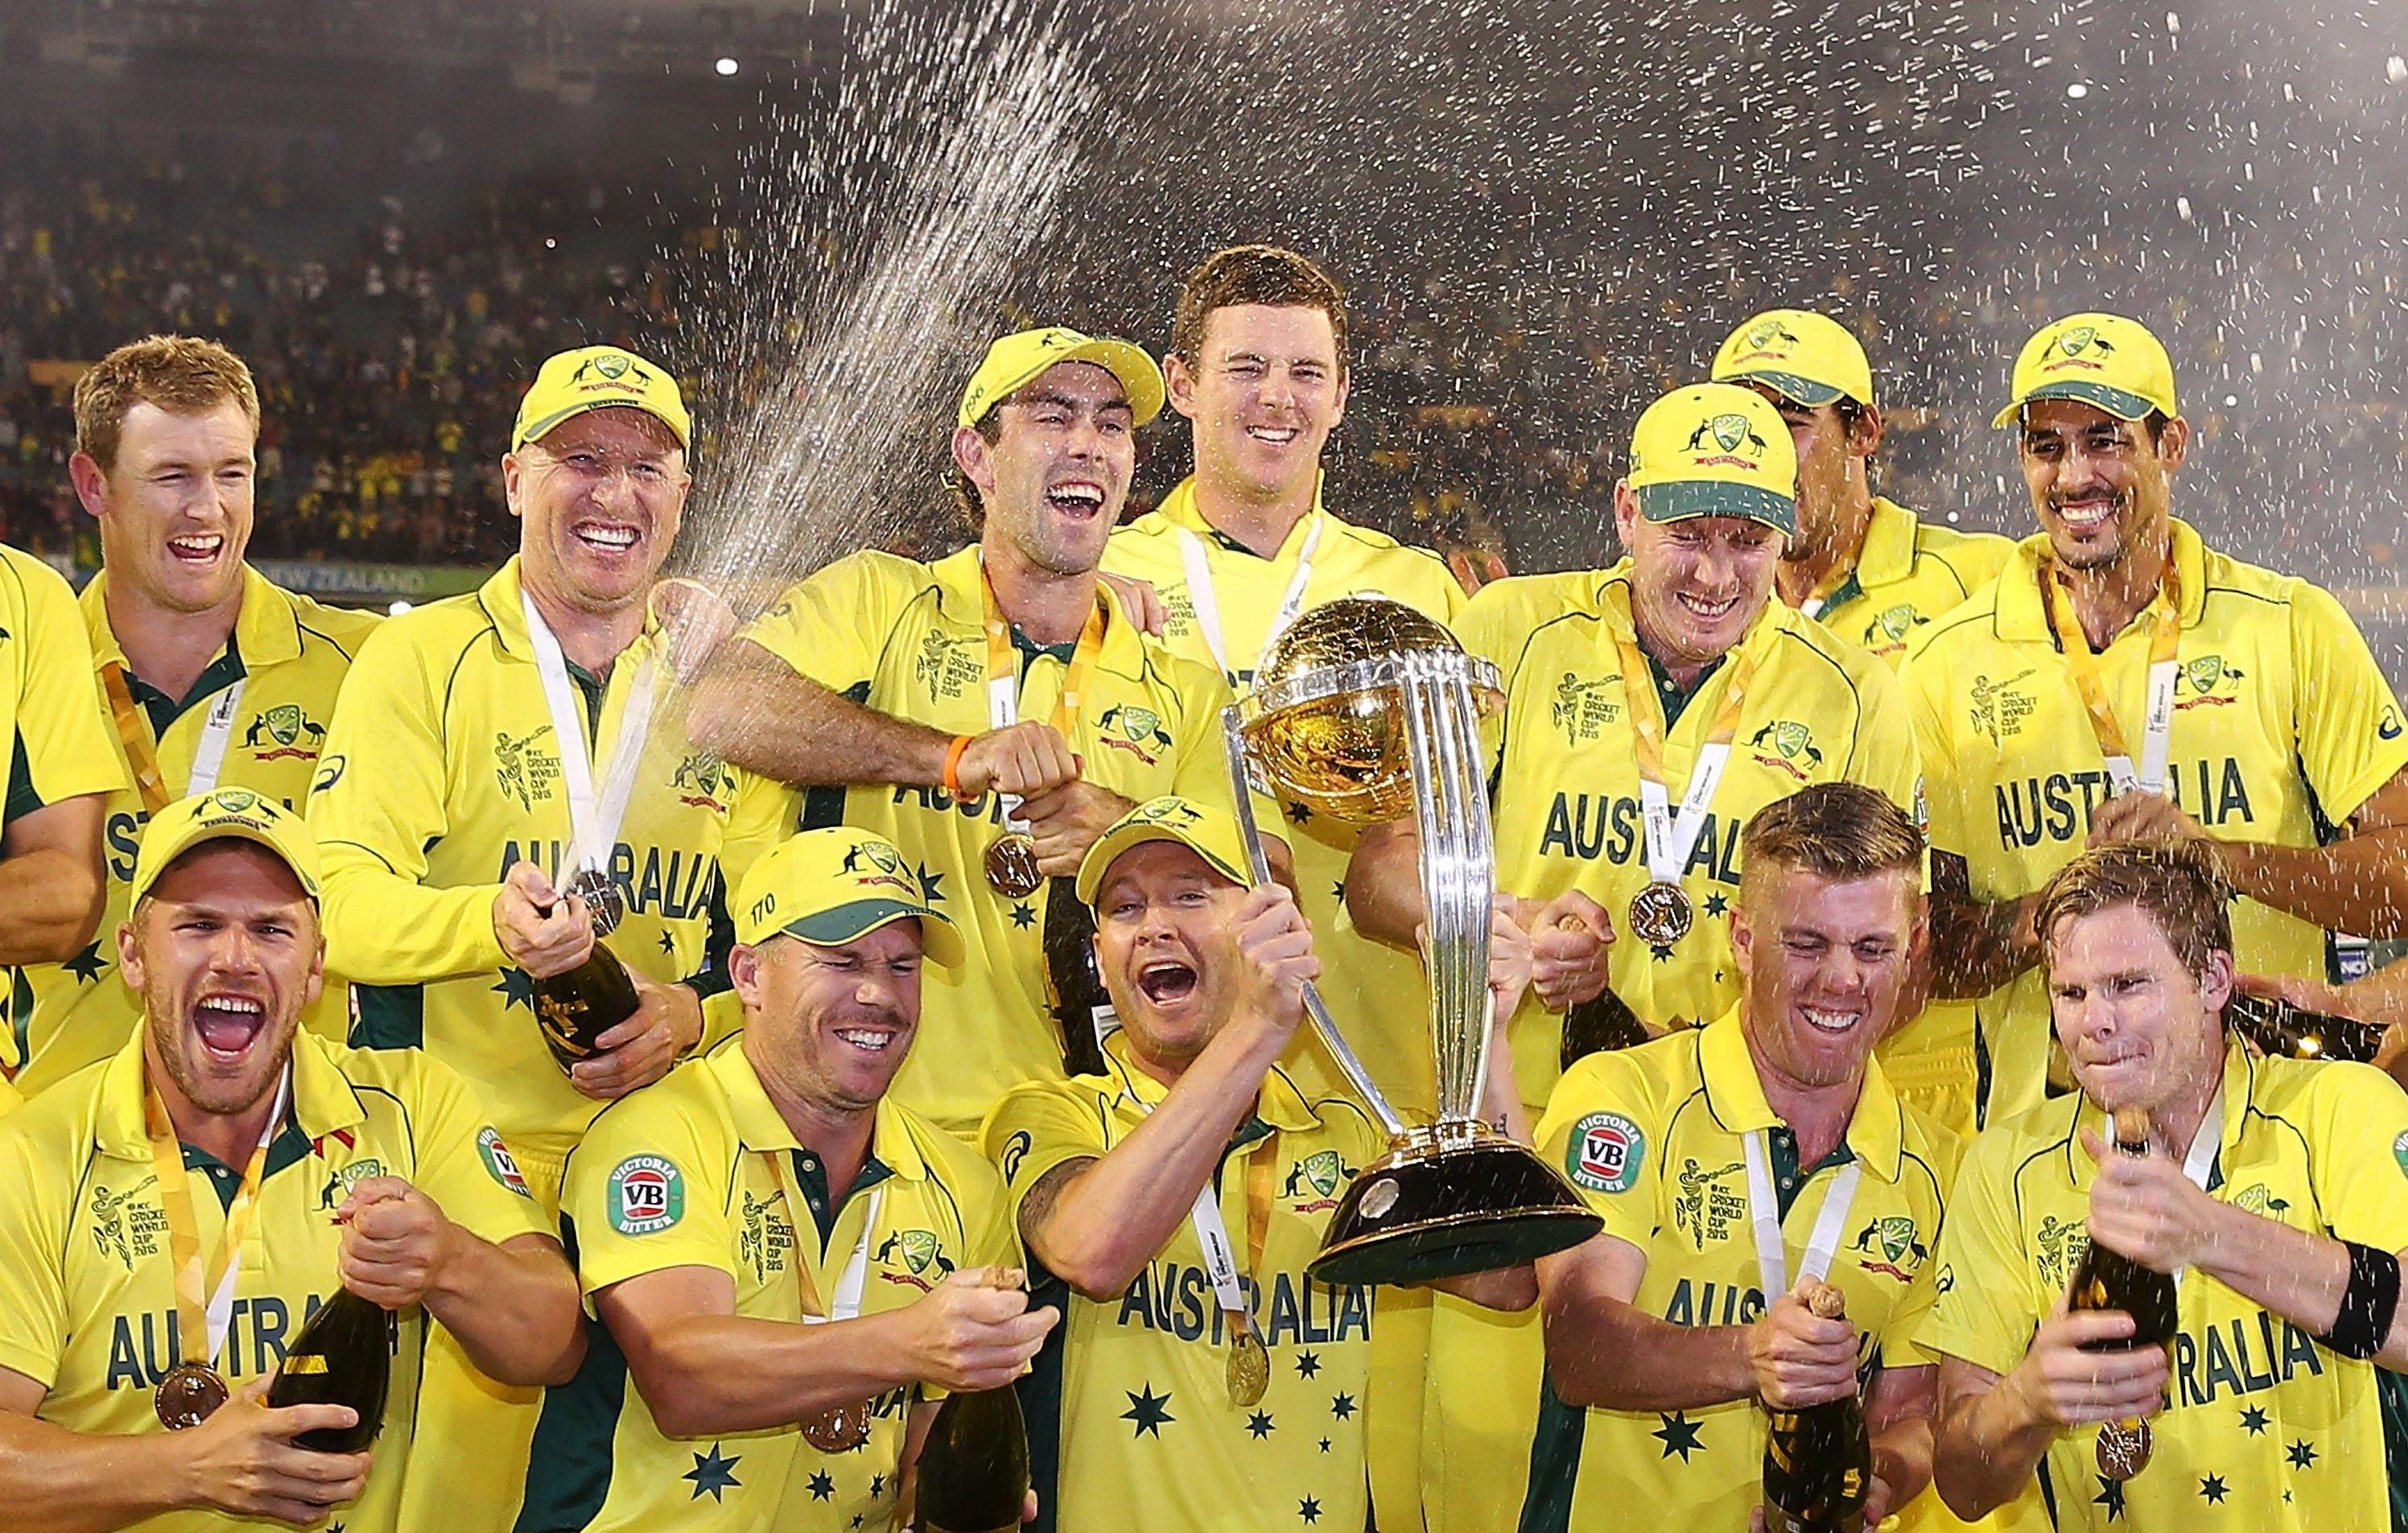 Australia lifted the last Cricket World Cup in 2015